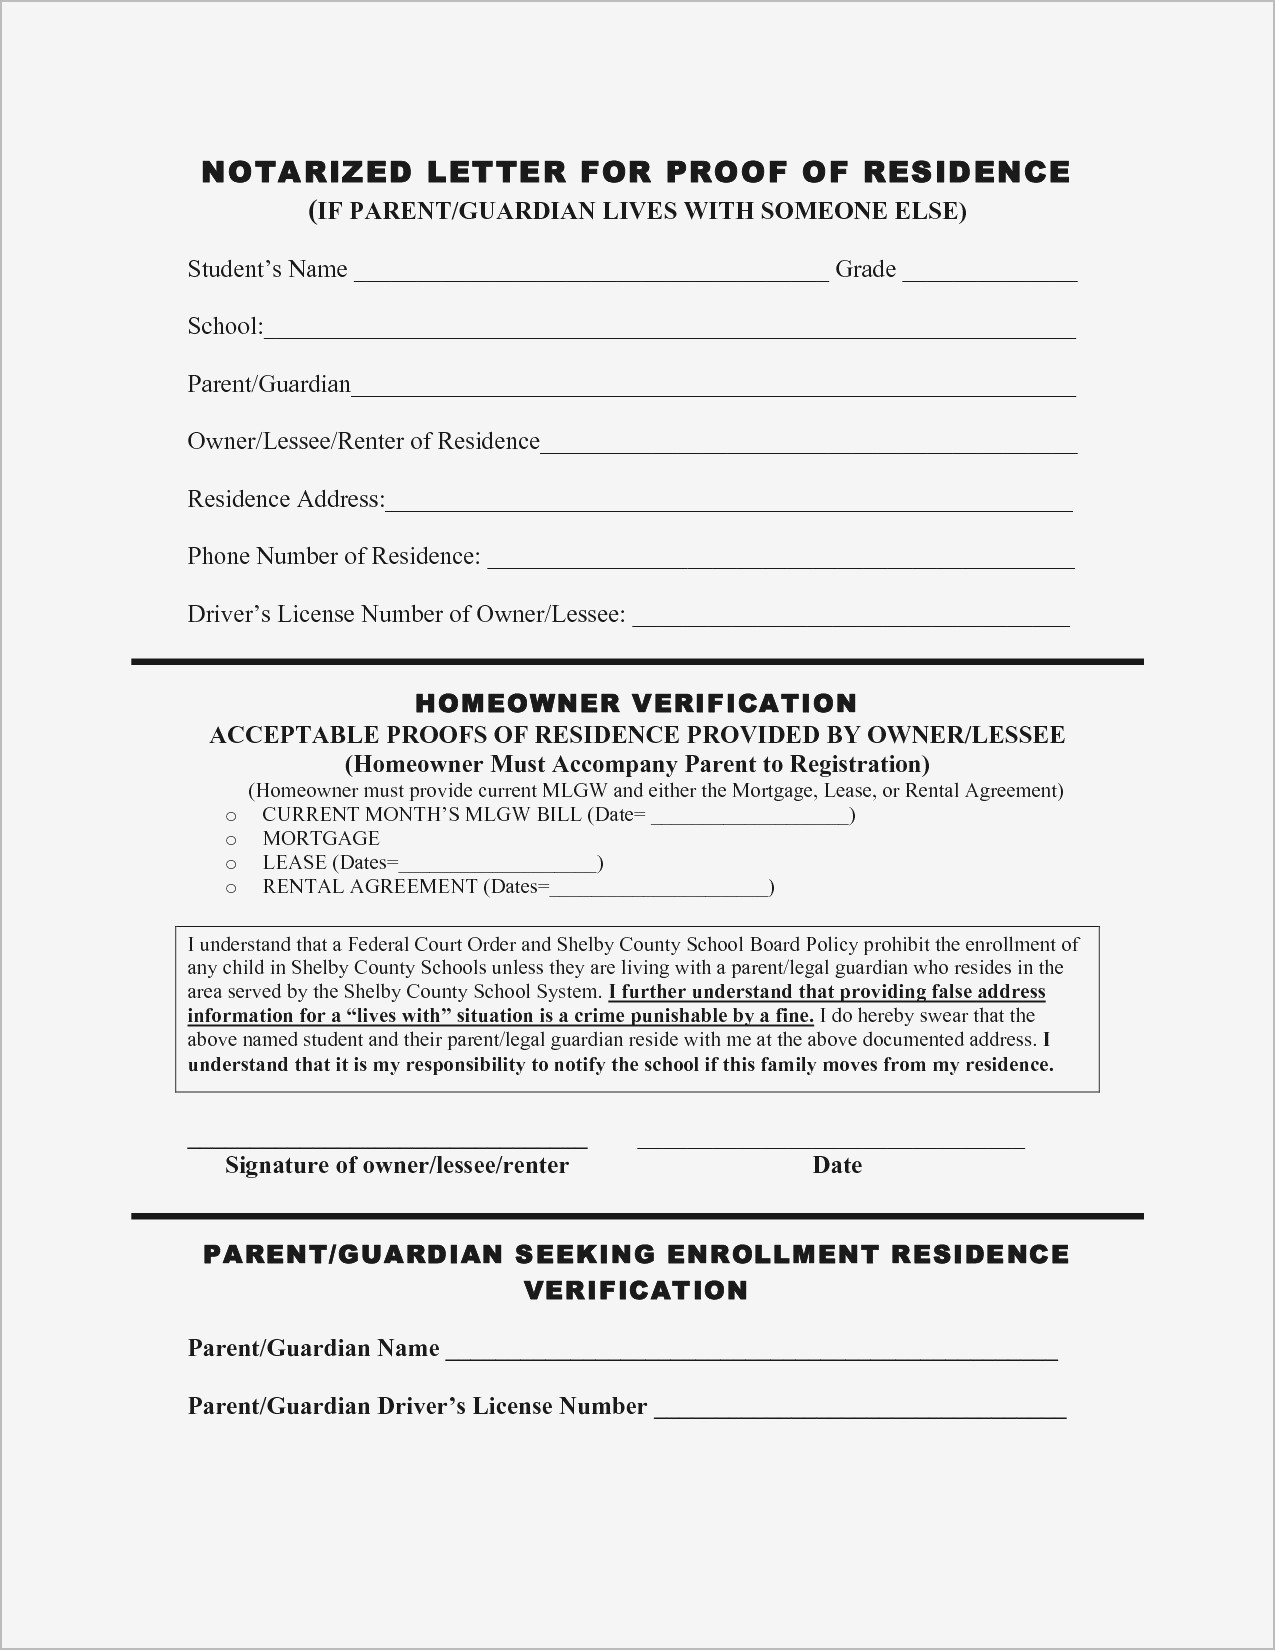 Proof Of Residency Letter Template Word - Proof Residency Letter Template Word Awesome Printable Notarized